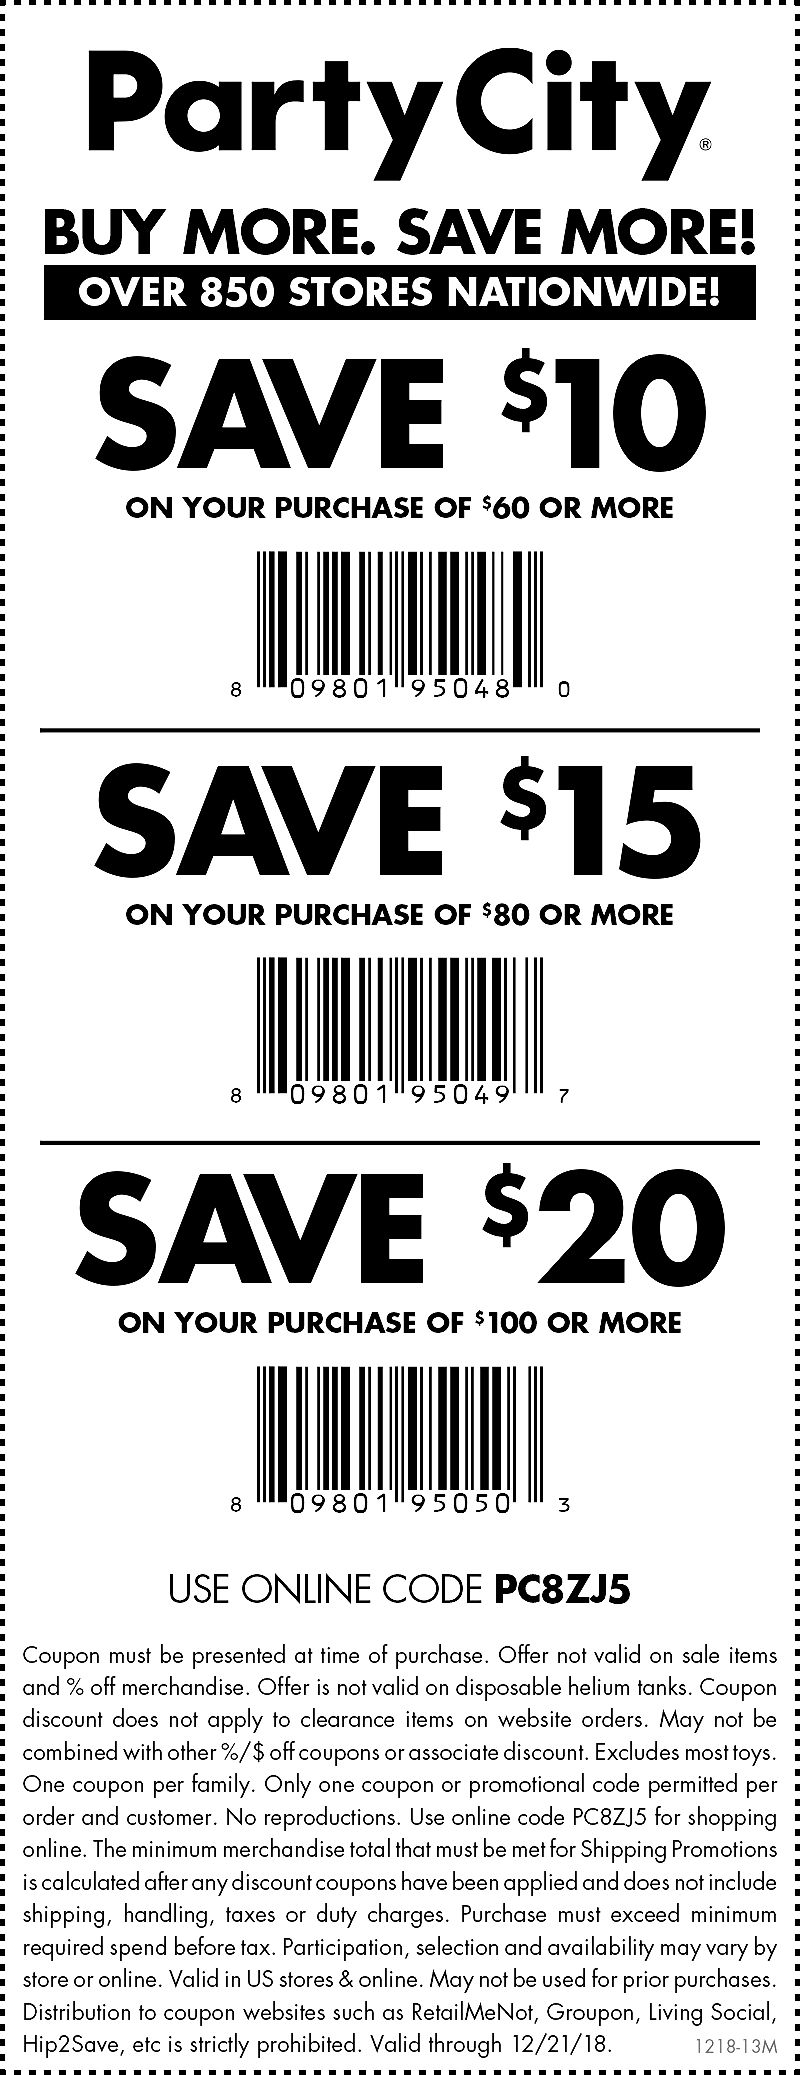 party city printable coupons 2013